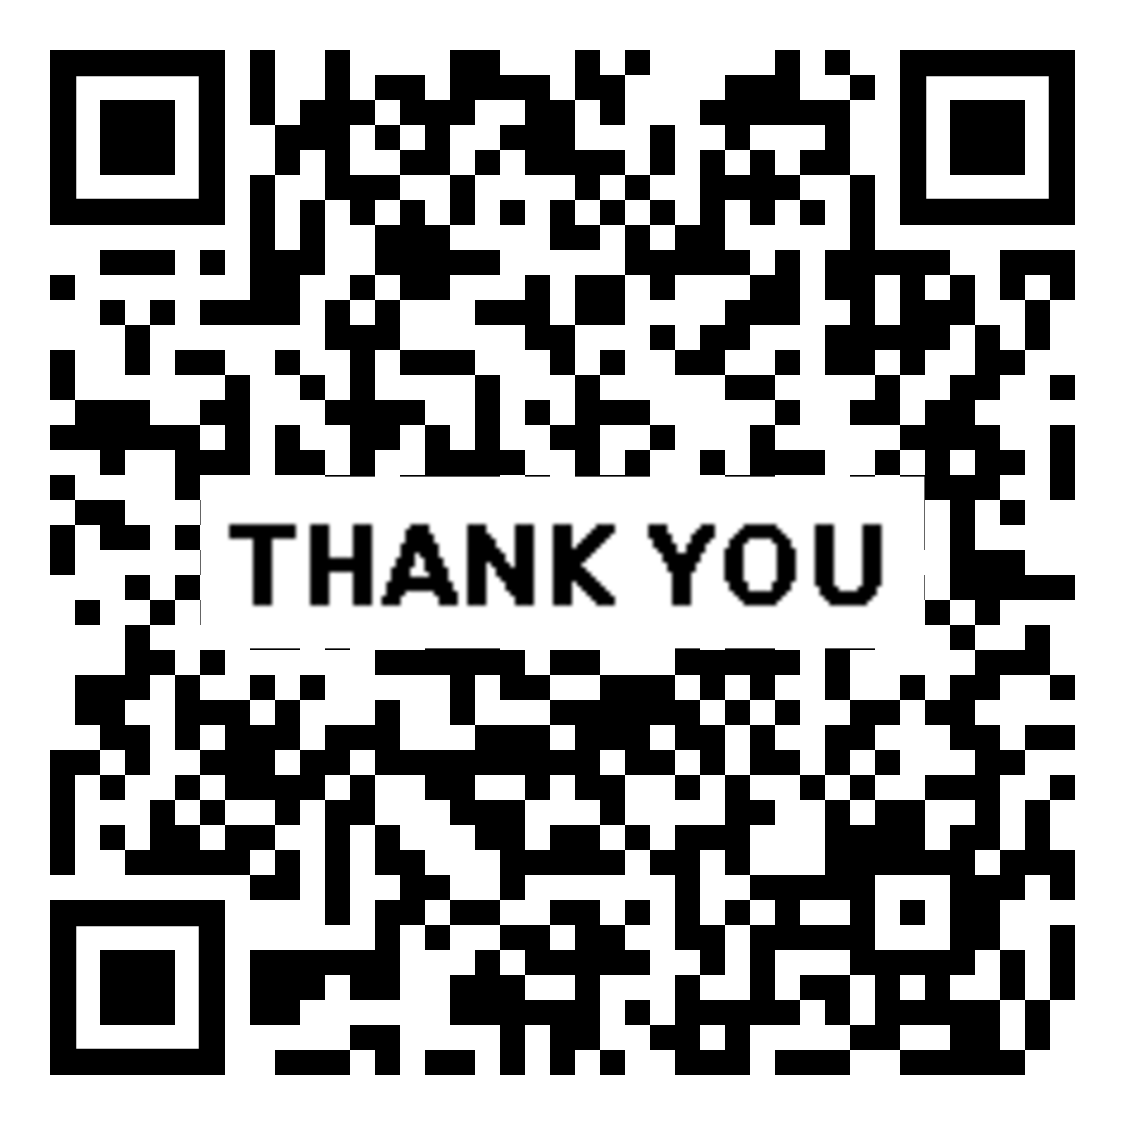 http://mtrymca.org/sites/mtrymca.org/assets/images/give/qr-code-thank-you.png